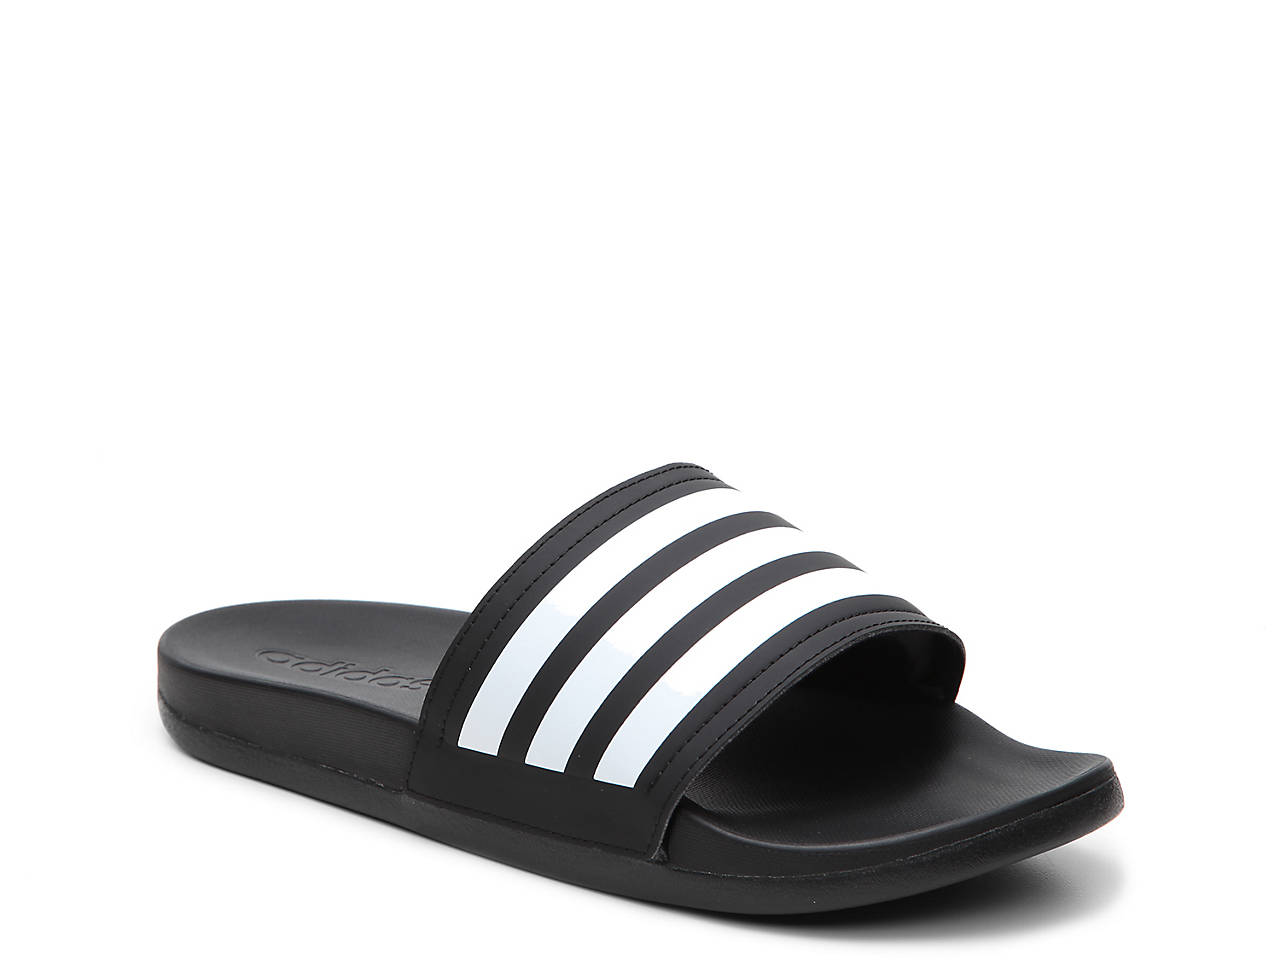 new arrival c1c7c 9c460 adidas. Adilette Cloudfoam Ultra Stripes Slide Sandal ...